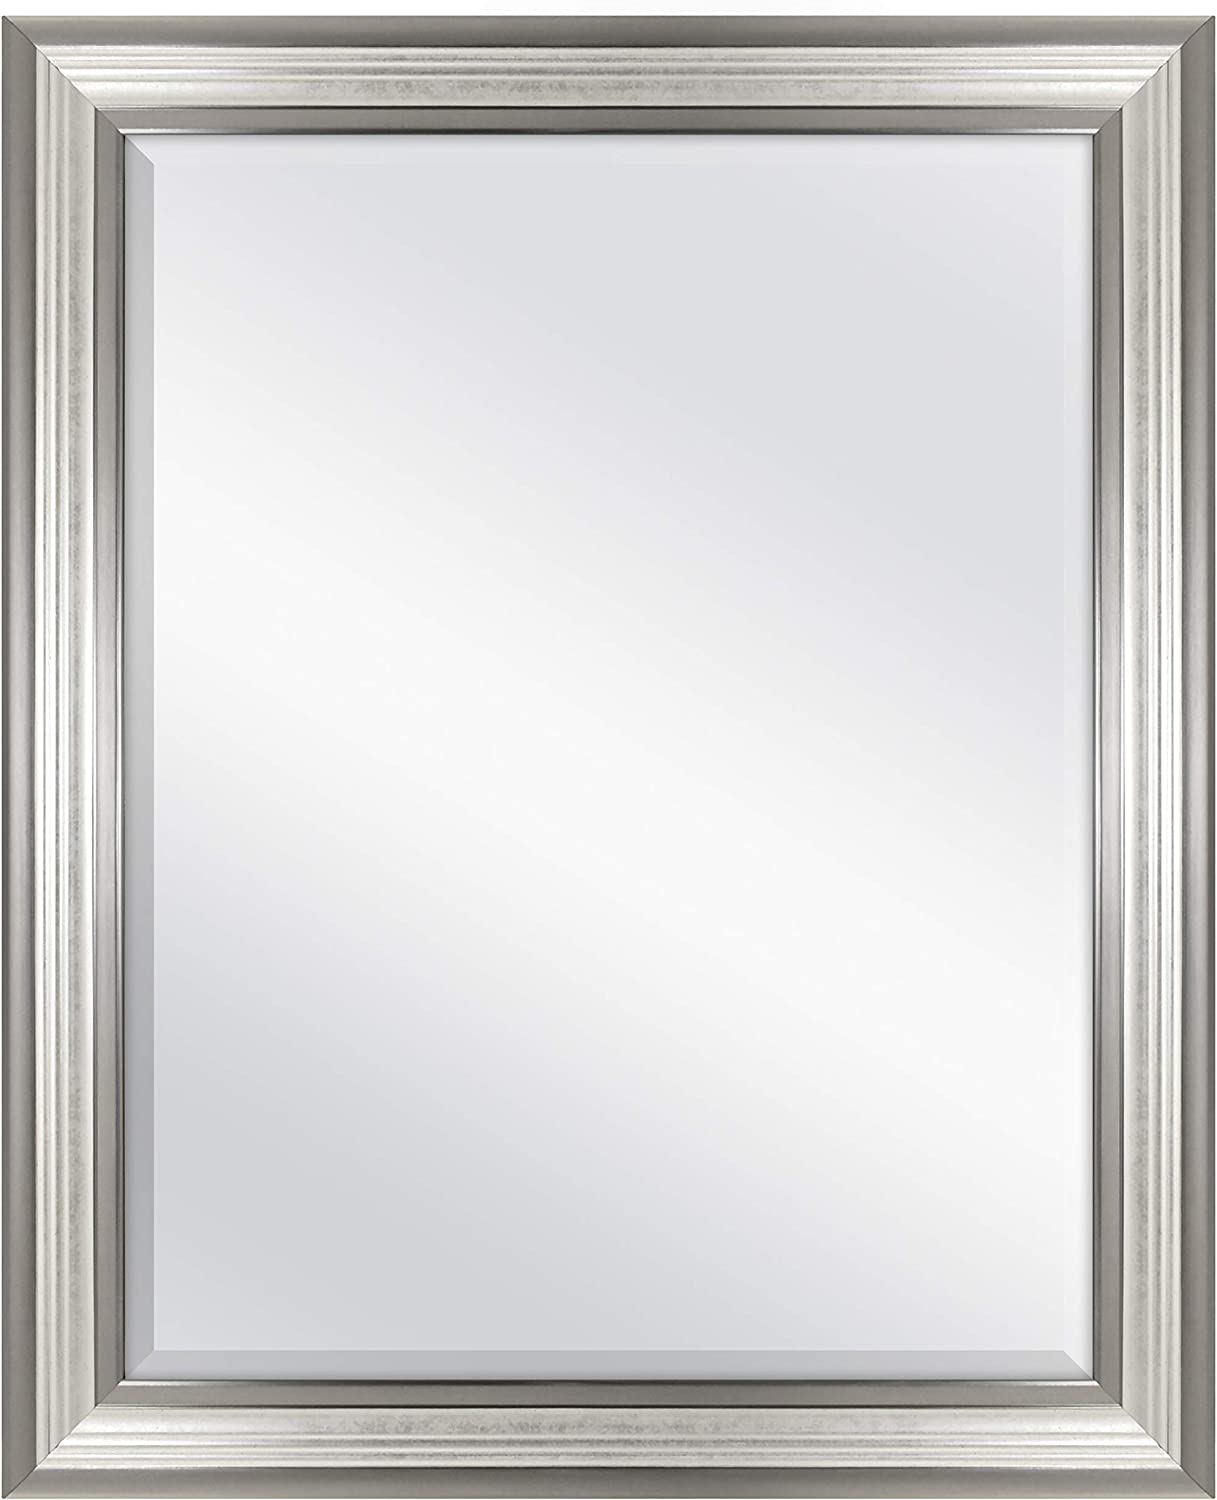 MCS 22x28 Inch Ridged Mirror, 27x33 Inch Overall Size, Silver (20580)